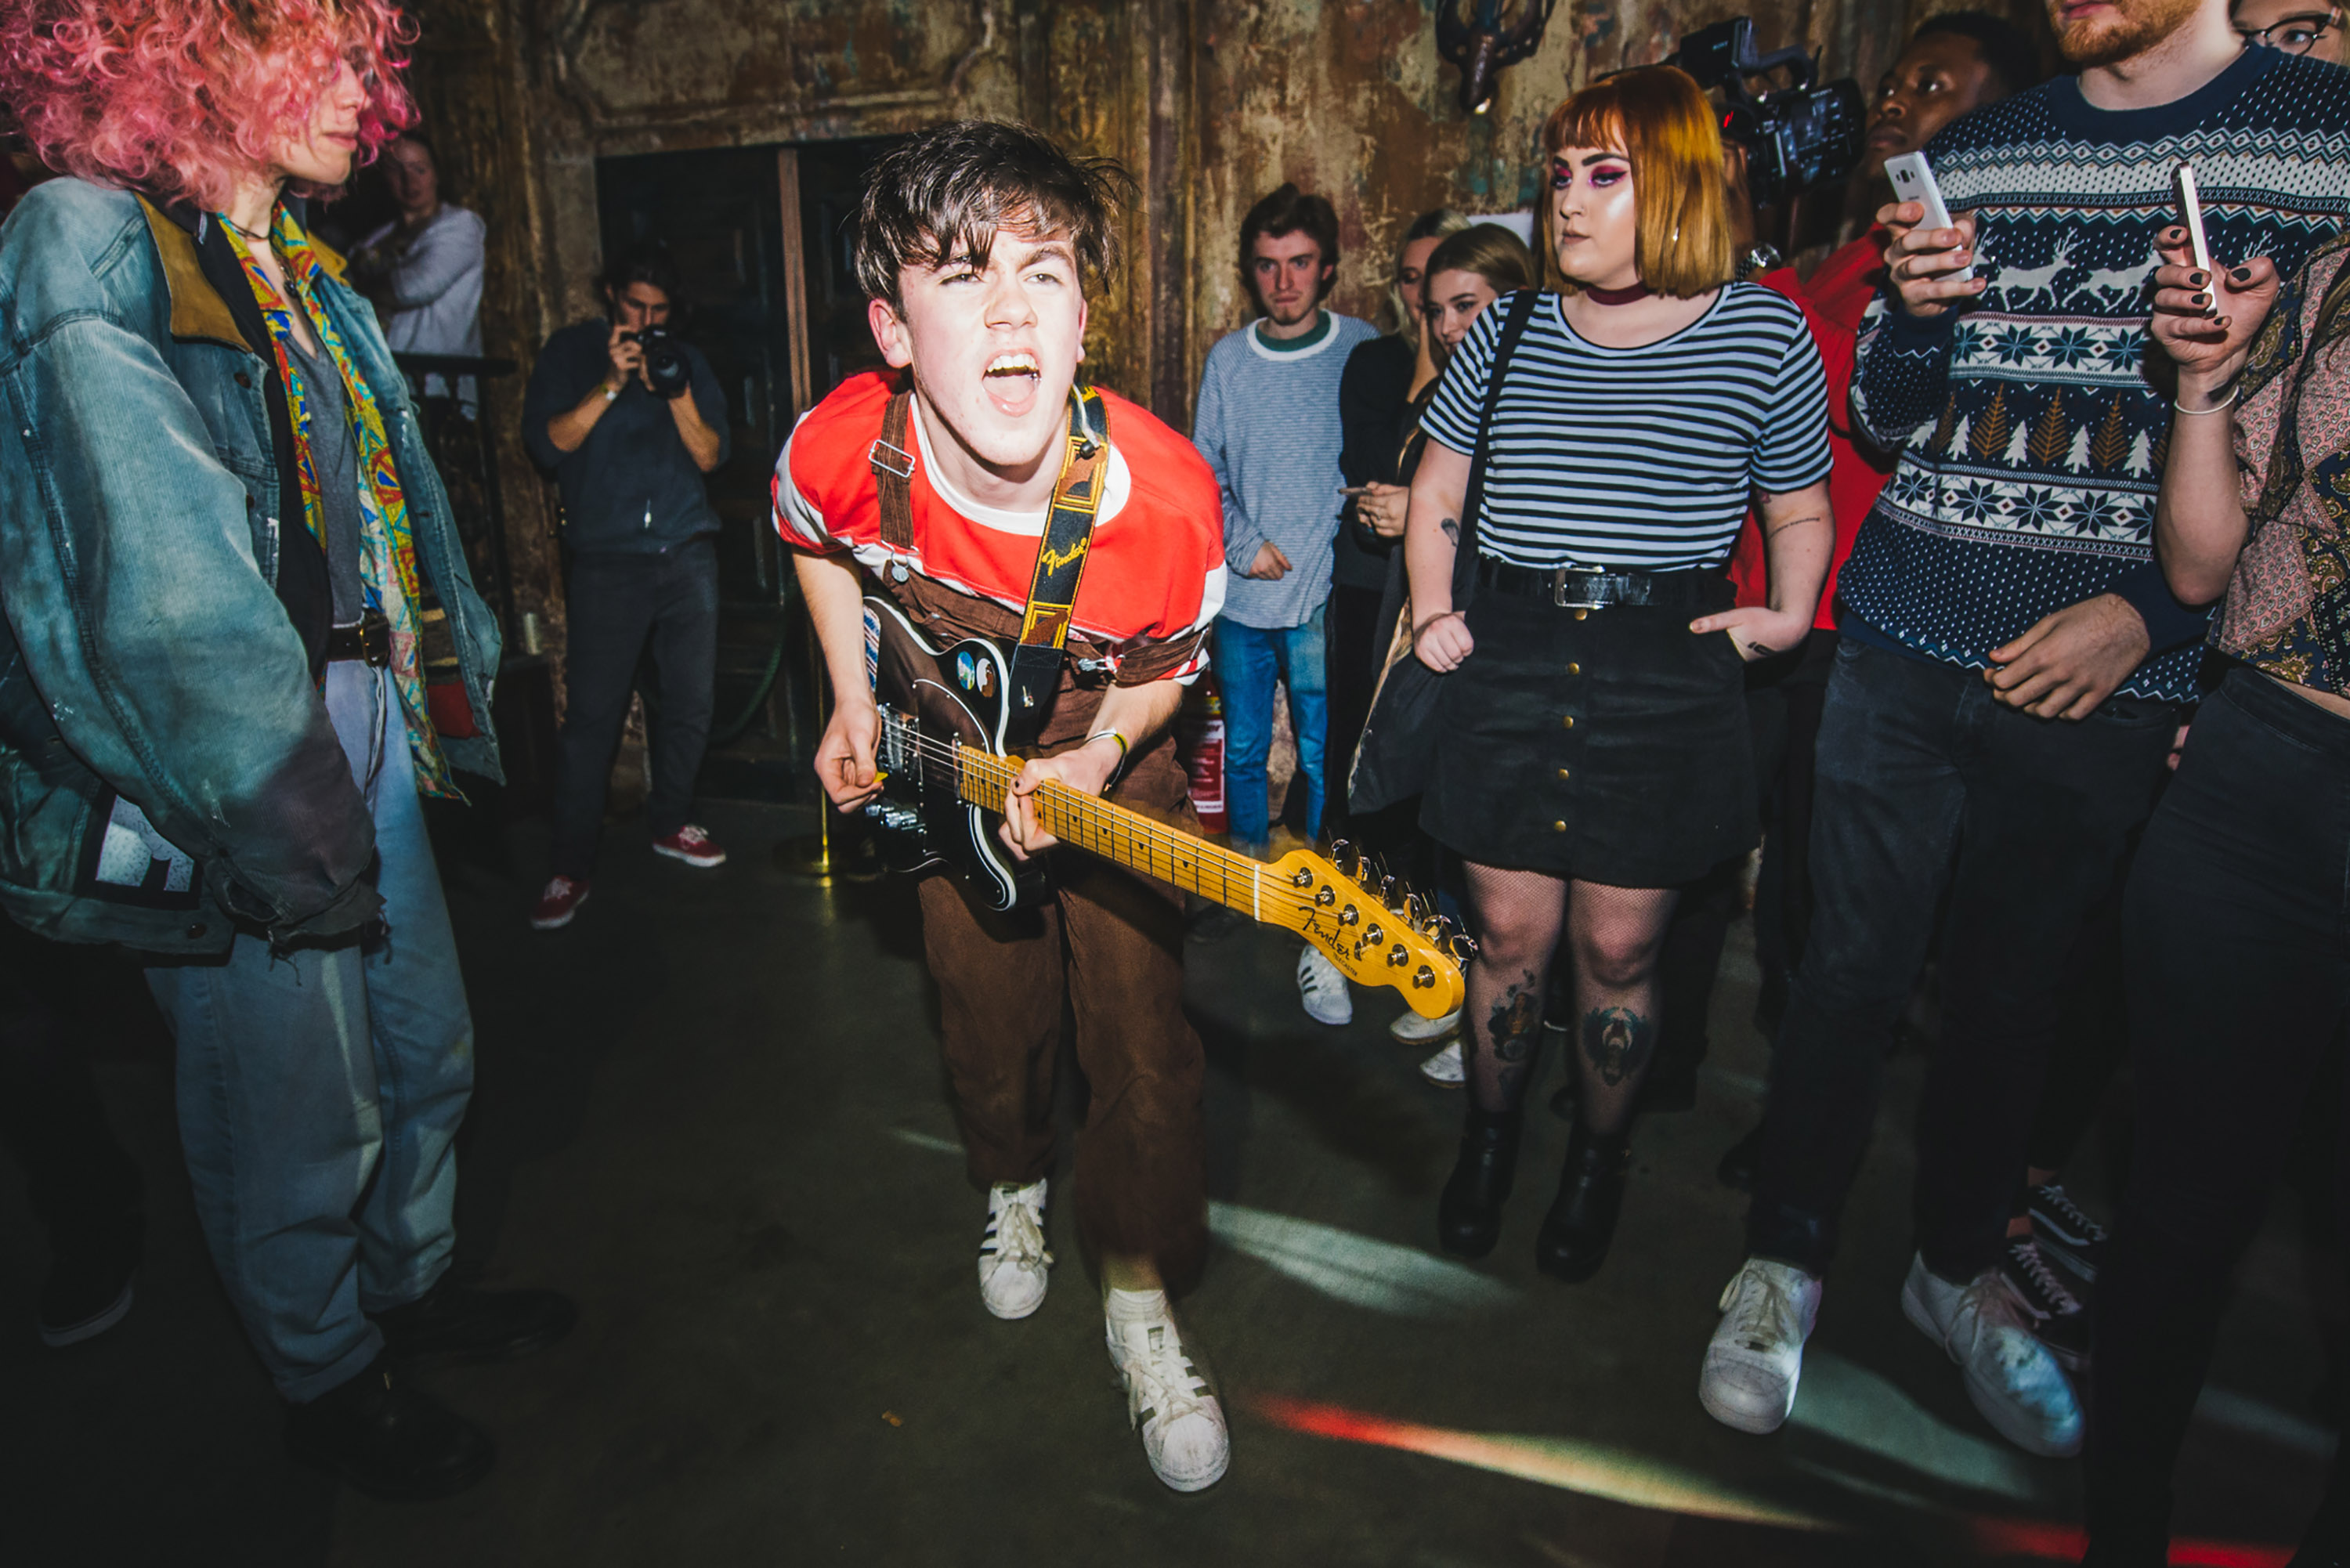 On film: DIY's Class of 2017 launch show